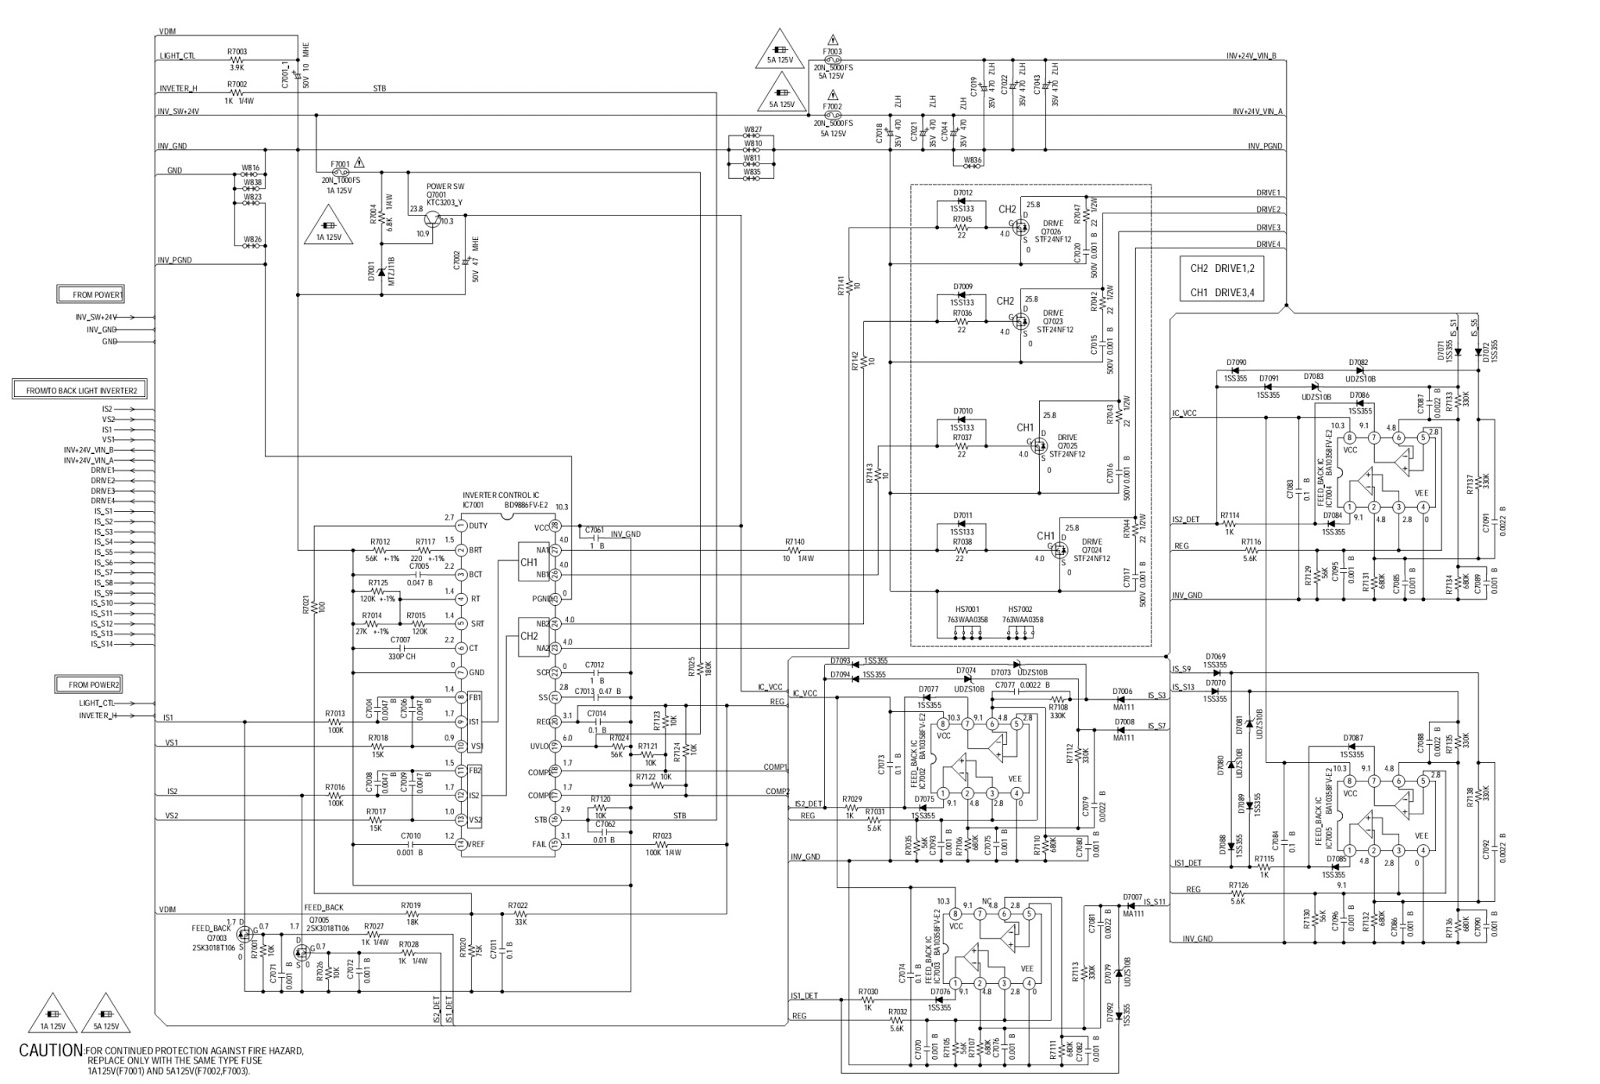 lcd monitor 193fw main power and backlight inverter schematic